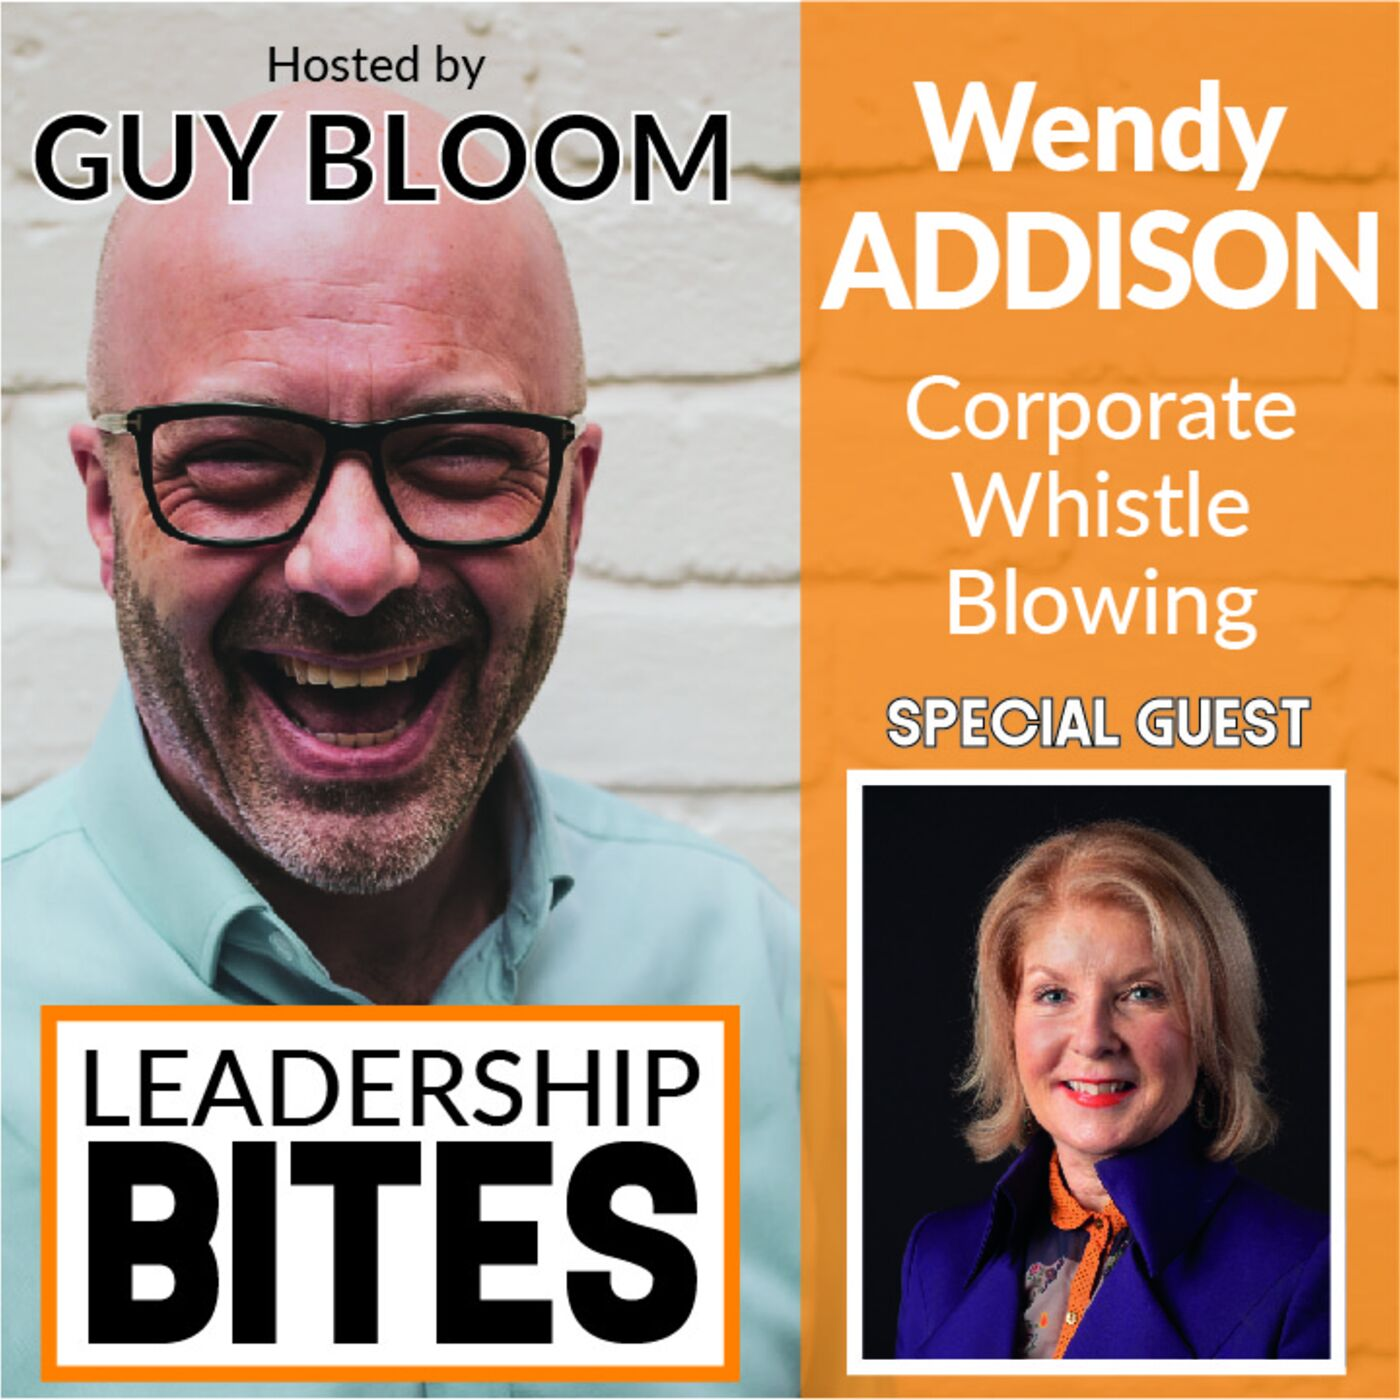 Wendy Addison, Corporate Whistle Blowing